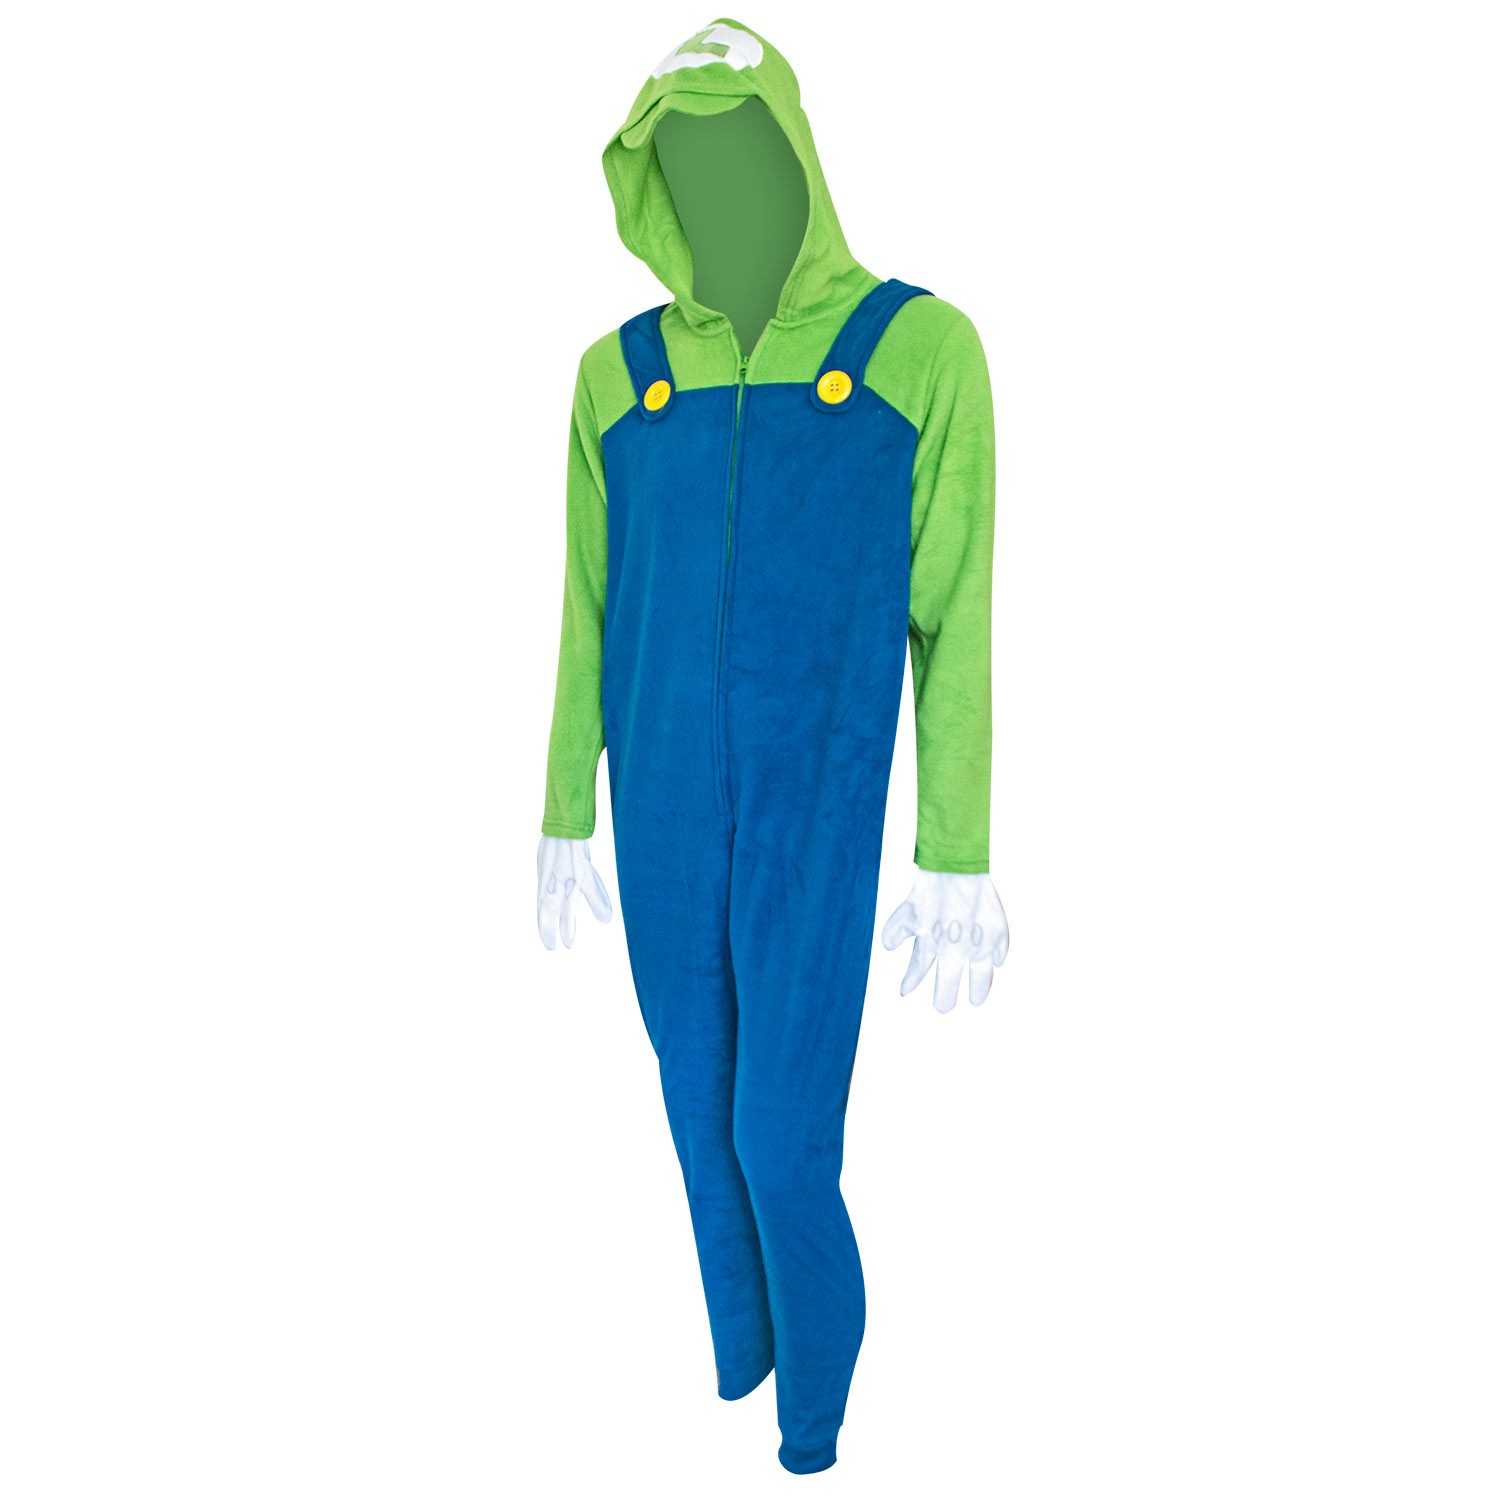 Super Mario Bros. Luigi Men's Union Suit